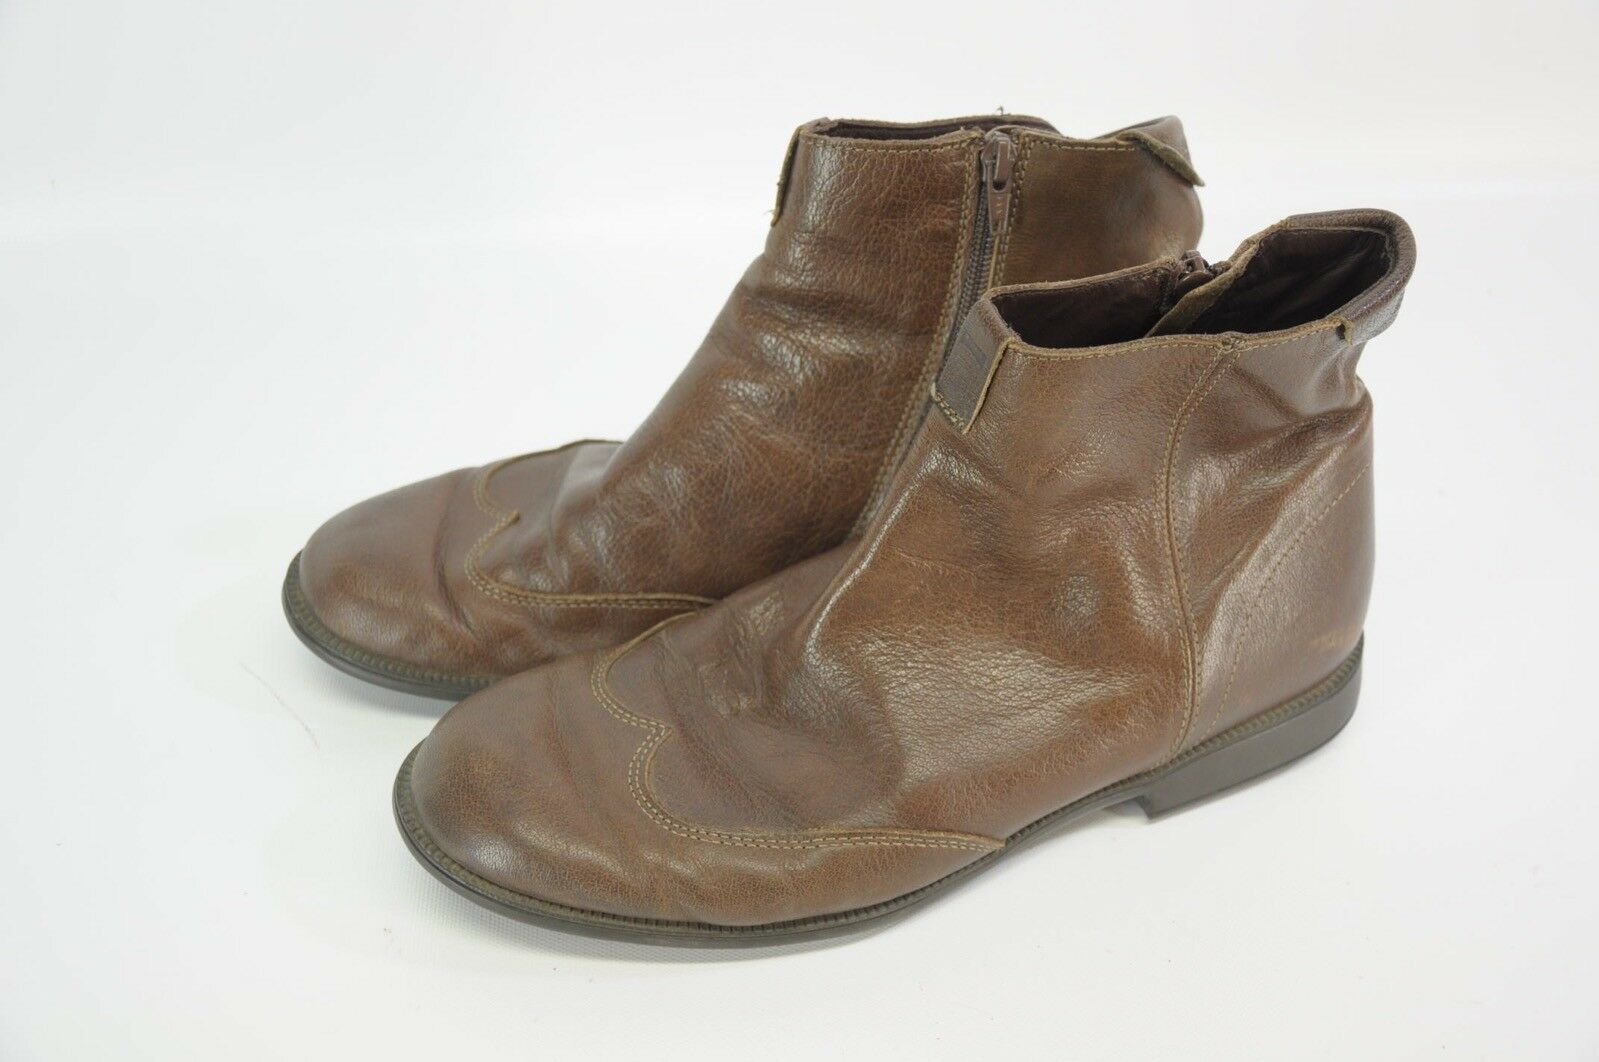 Camper braun Leather Zip Up Ankle Stiefel Rubber Sole 43 MGoldcco